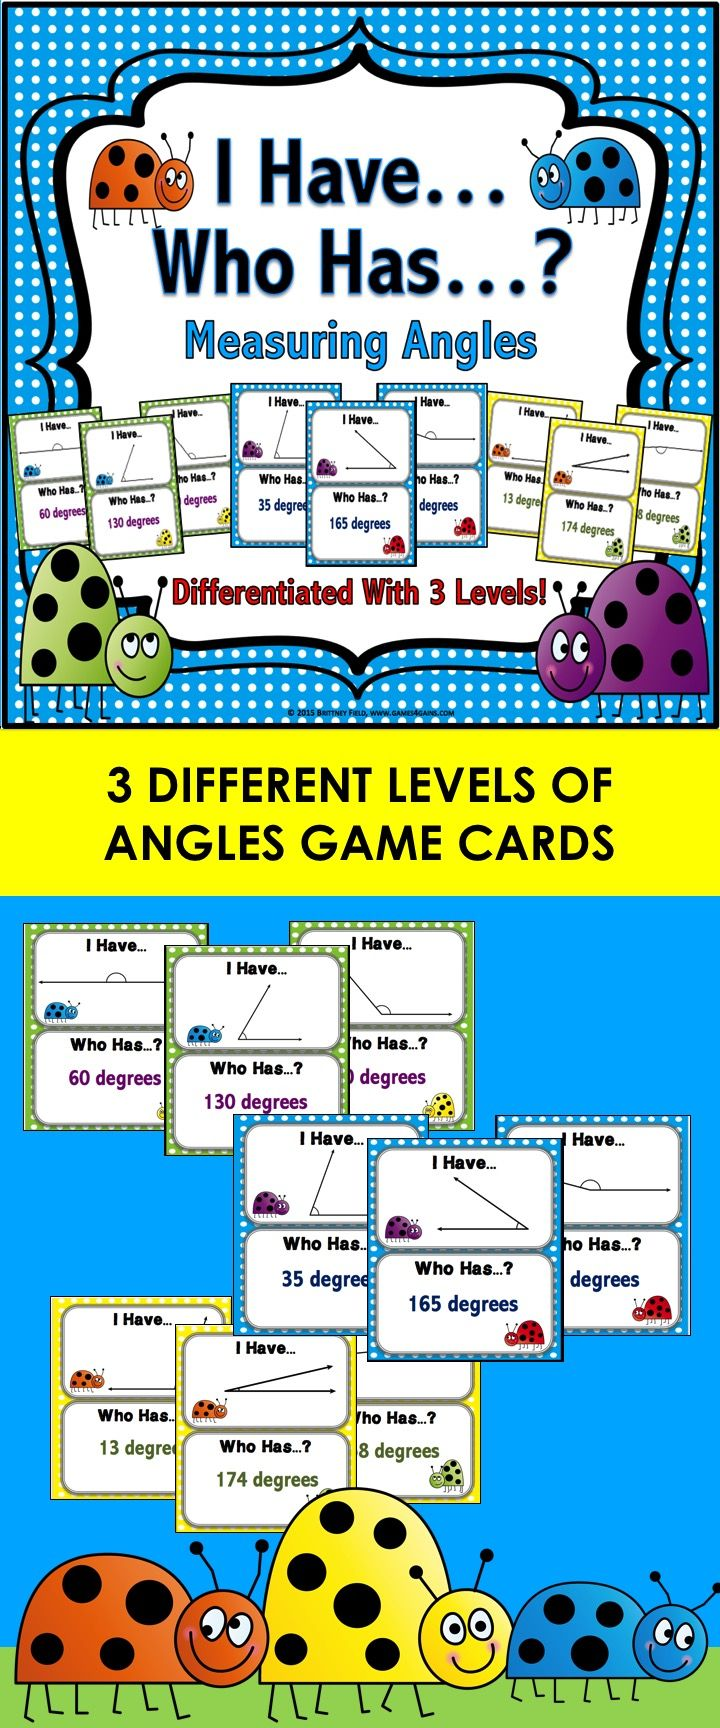 226 best angles images on pinterest teaching ideas teaching measuring angles game 46 robcynllc Image collections